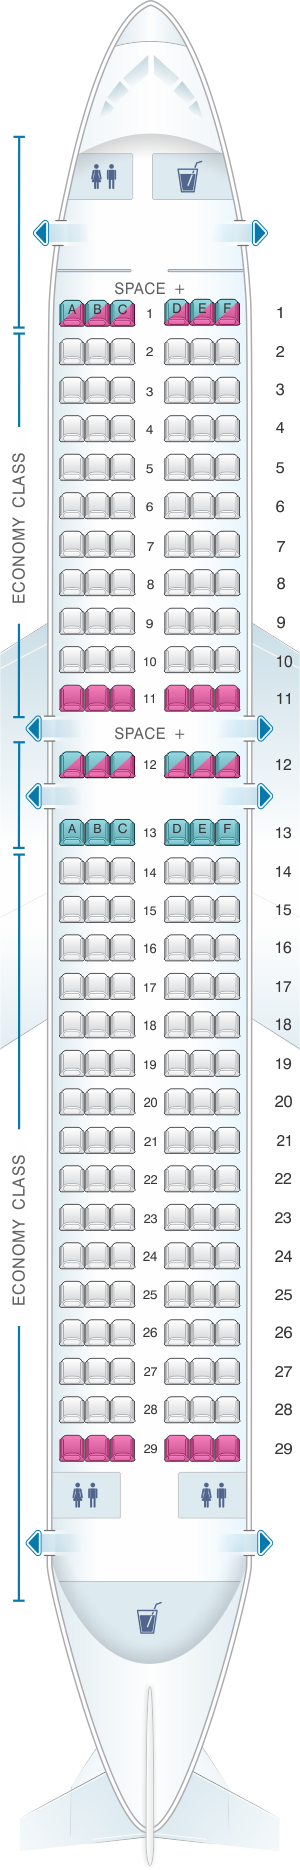 Seat map for LATAM Airlines Brasil Airbus A320 174PAX